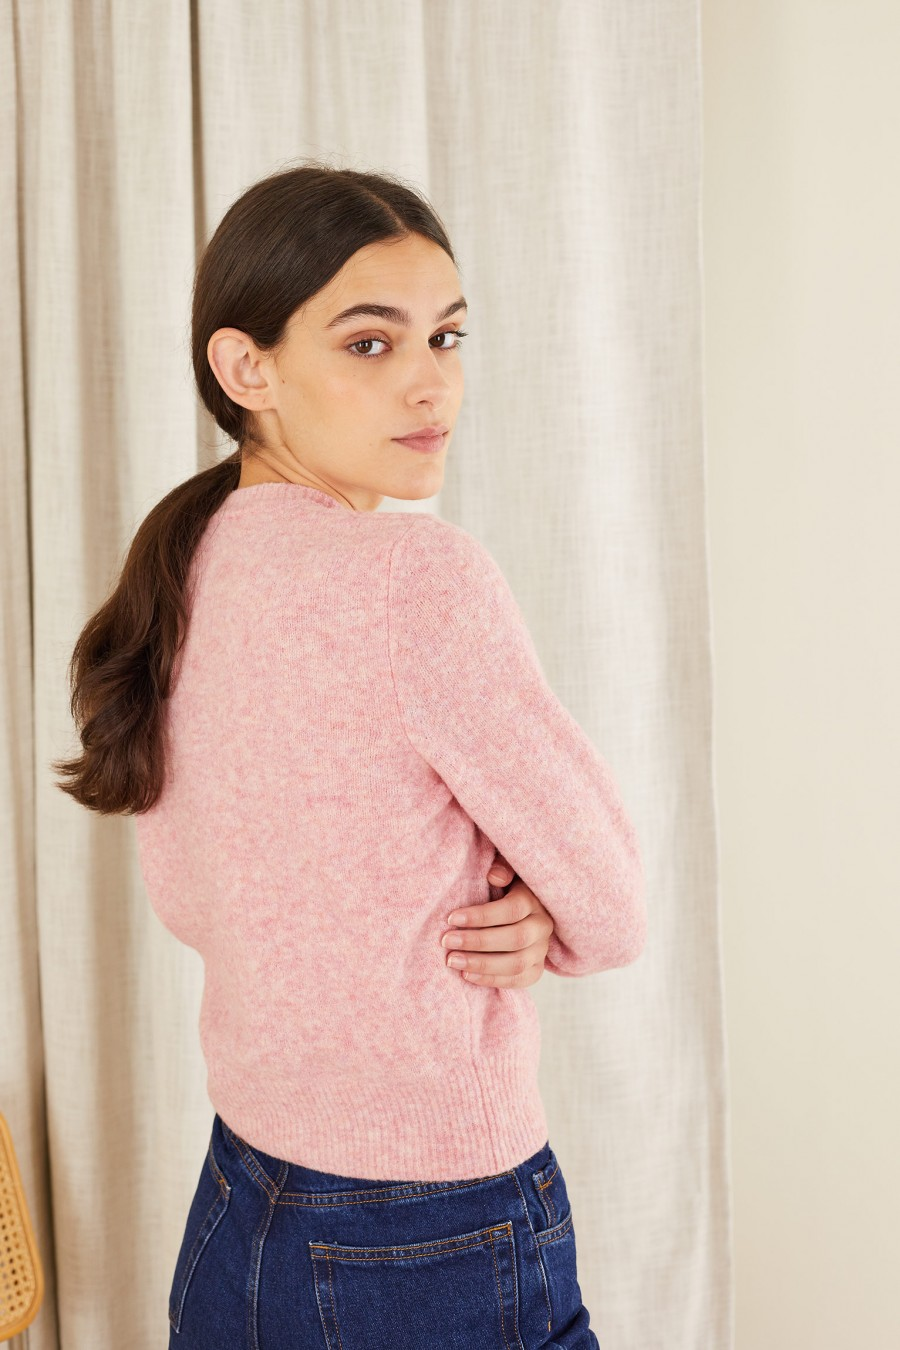 pink sweater for winter